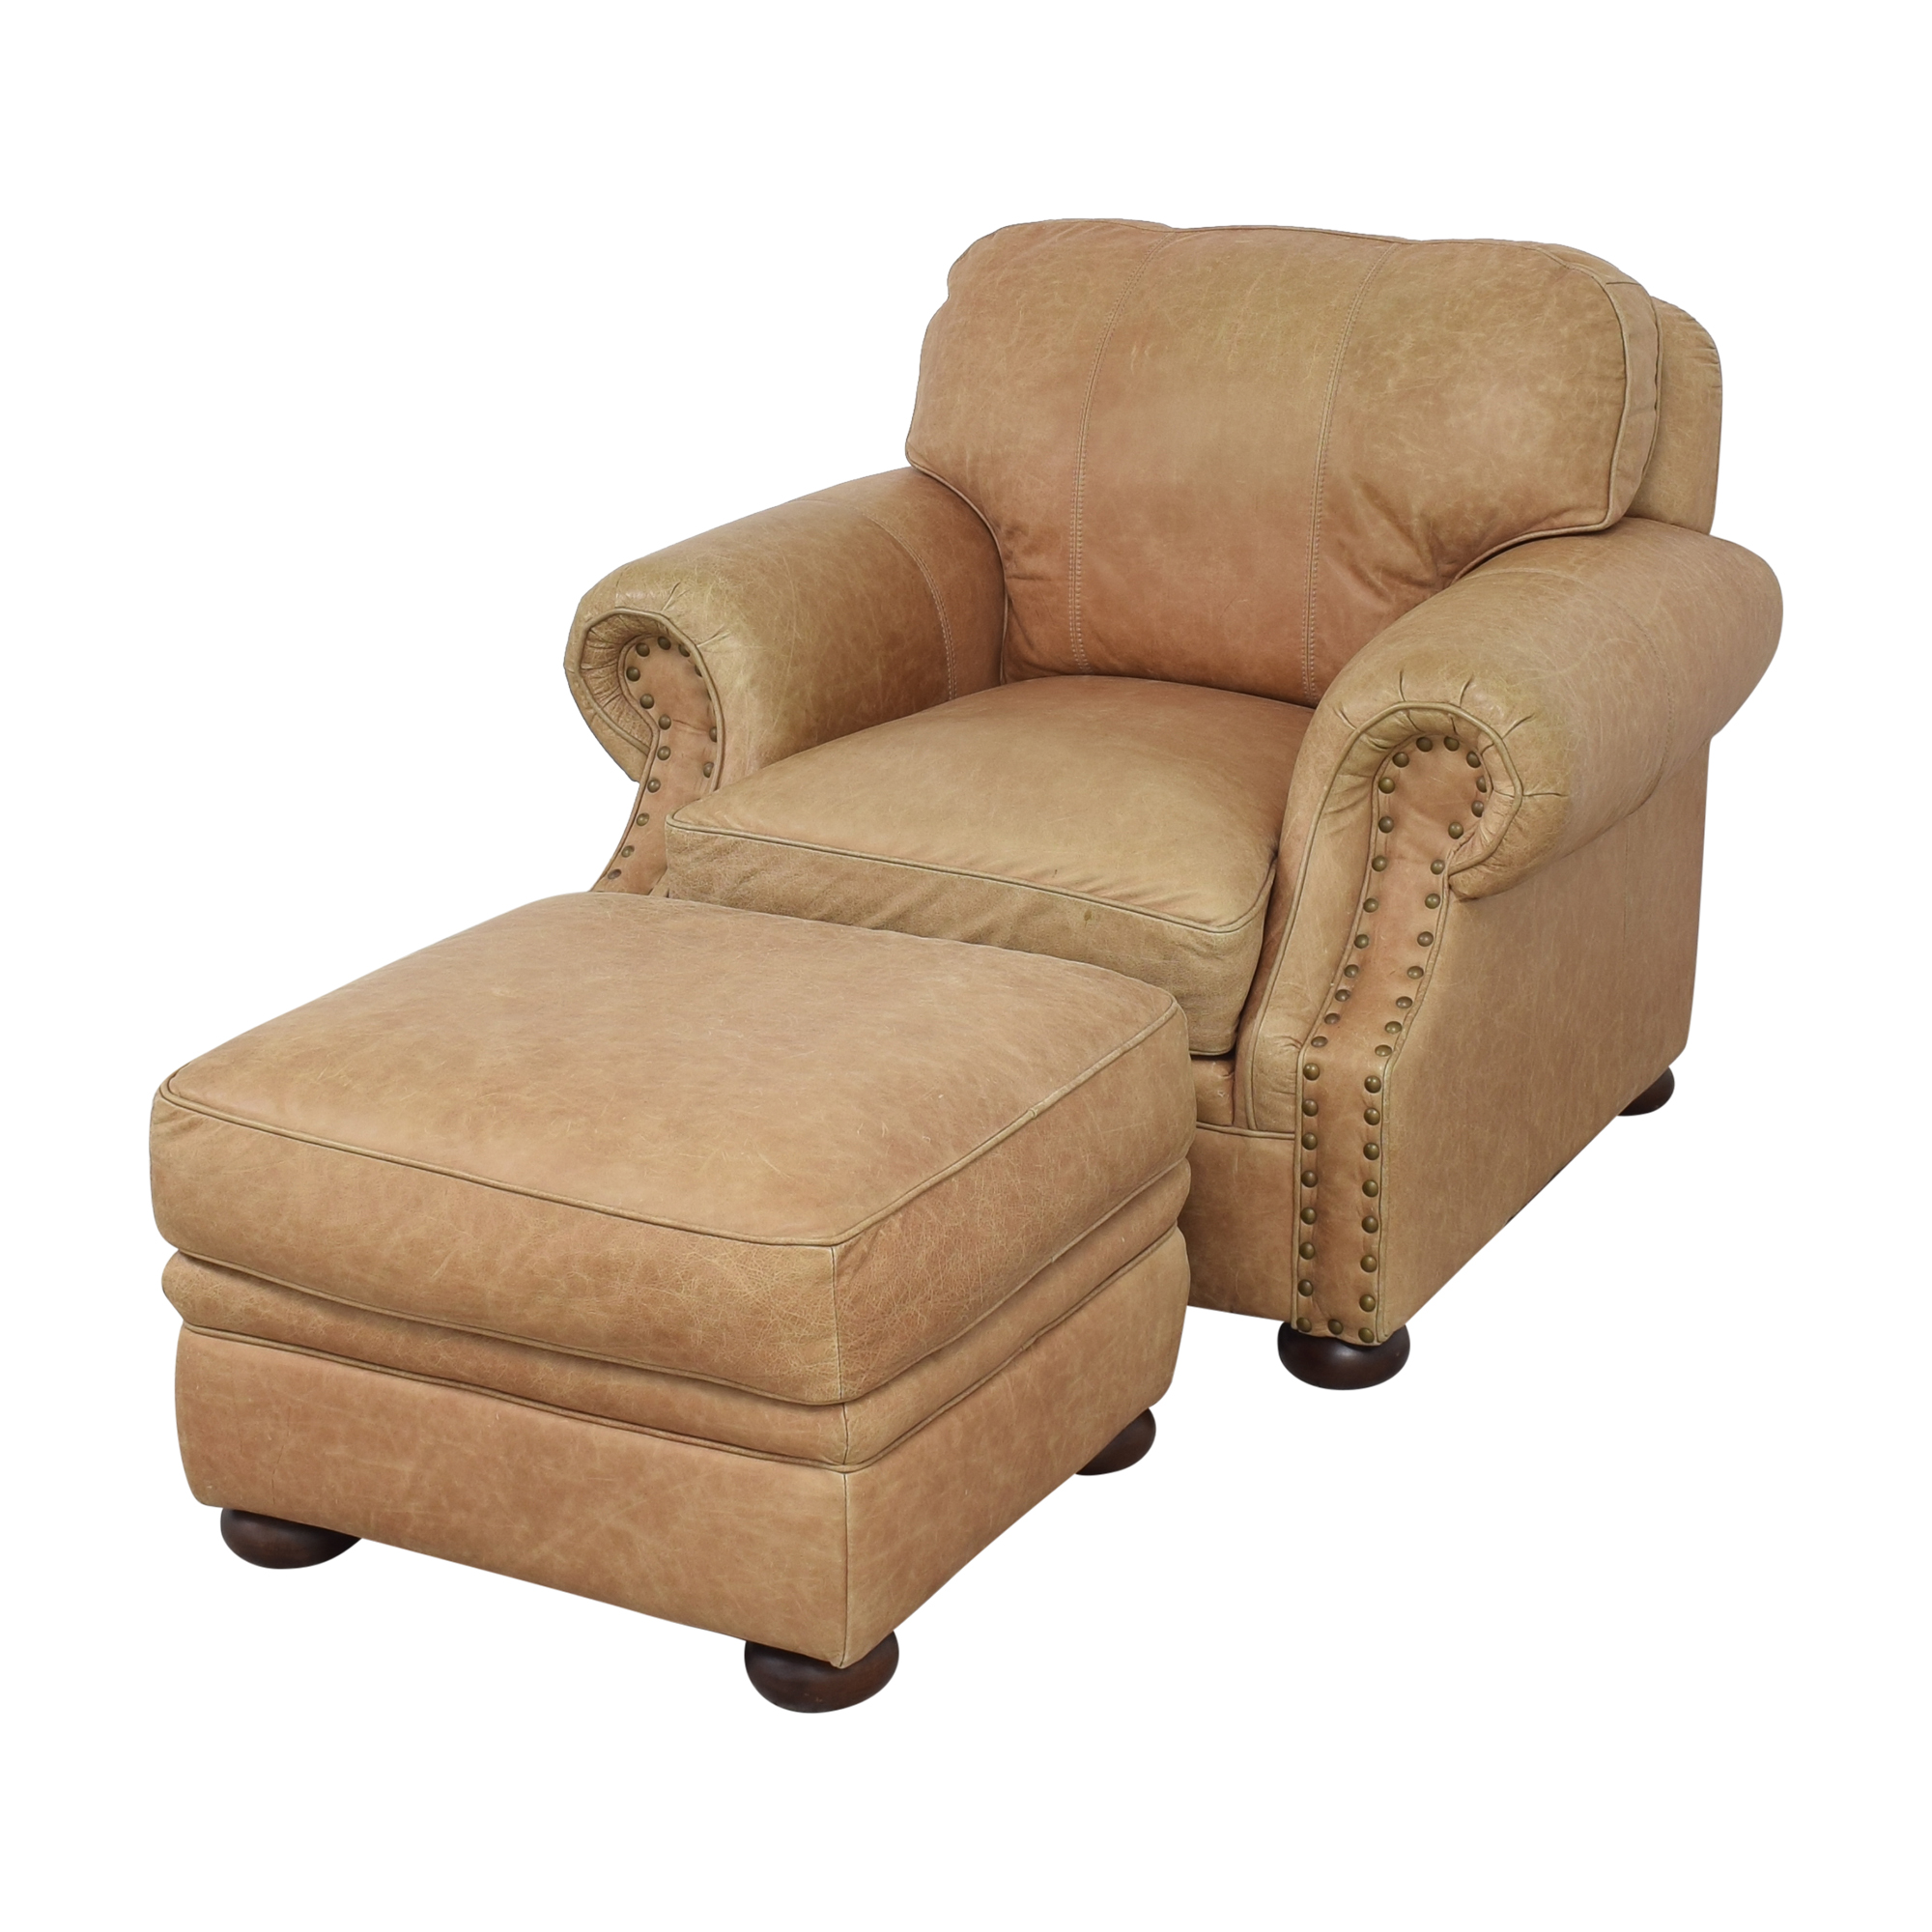 buy Ethan Allen Roll Arm Chair with Ottoman Ethan Allen Chairs